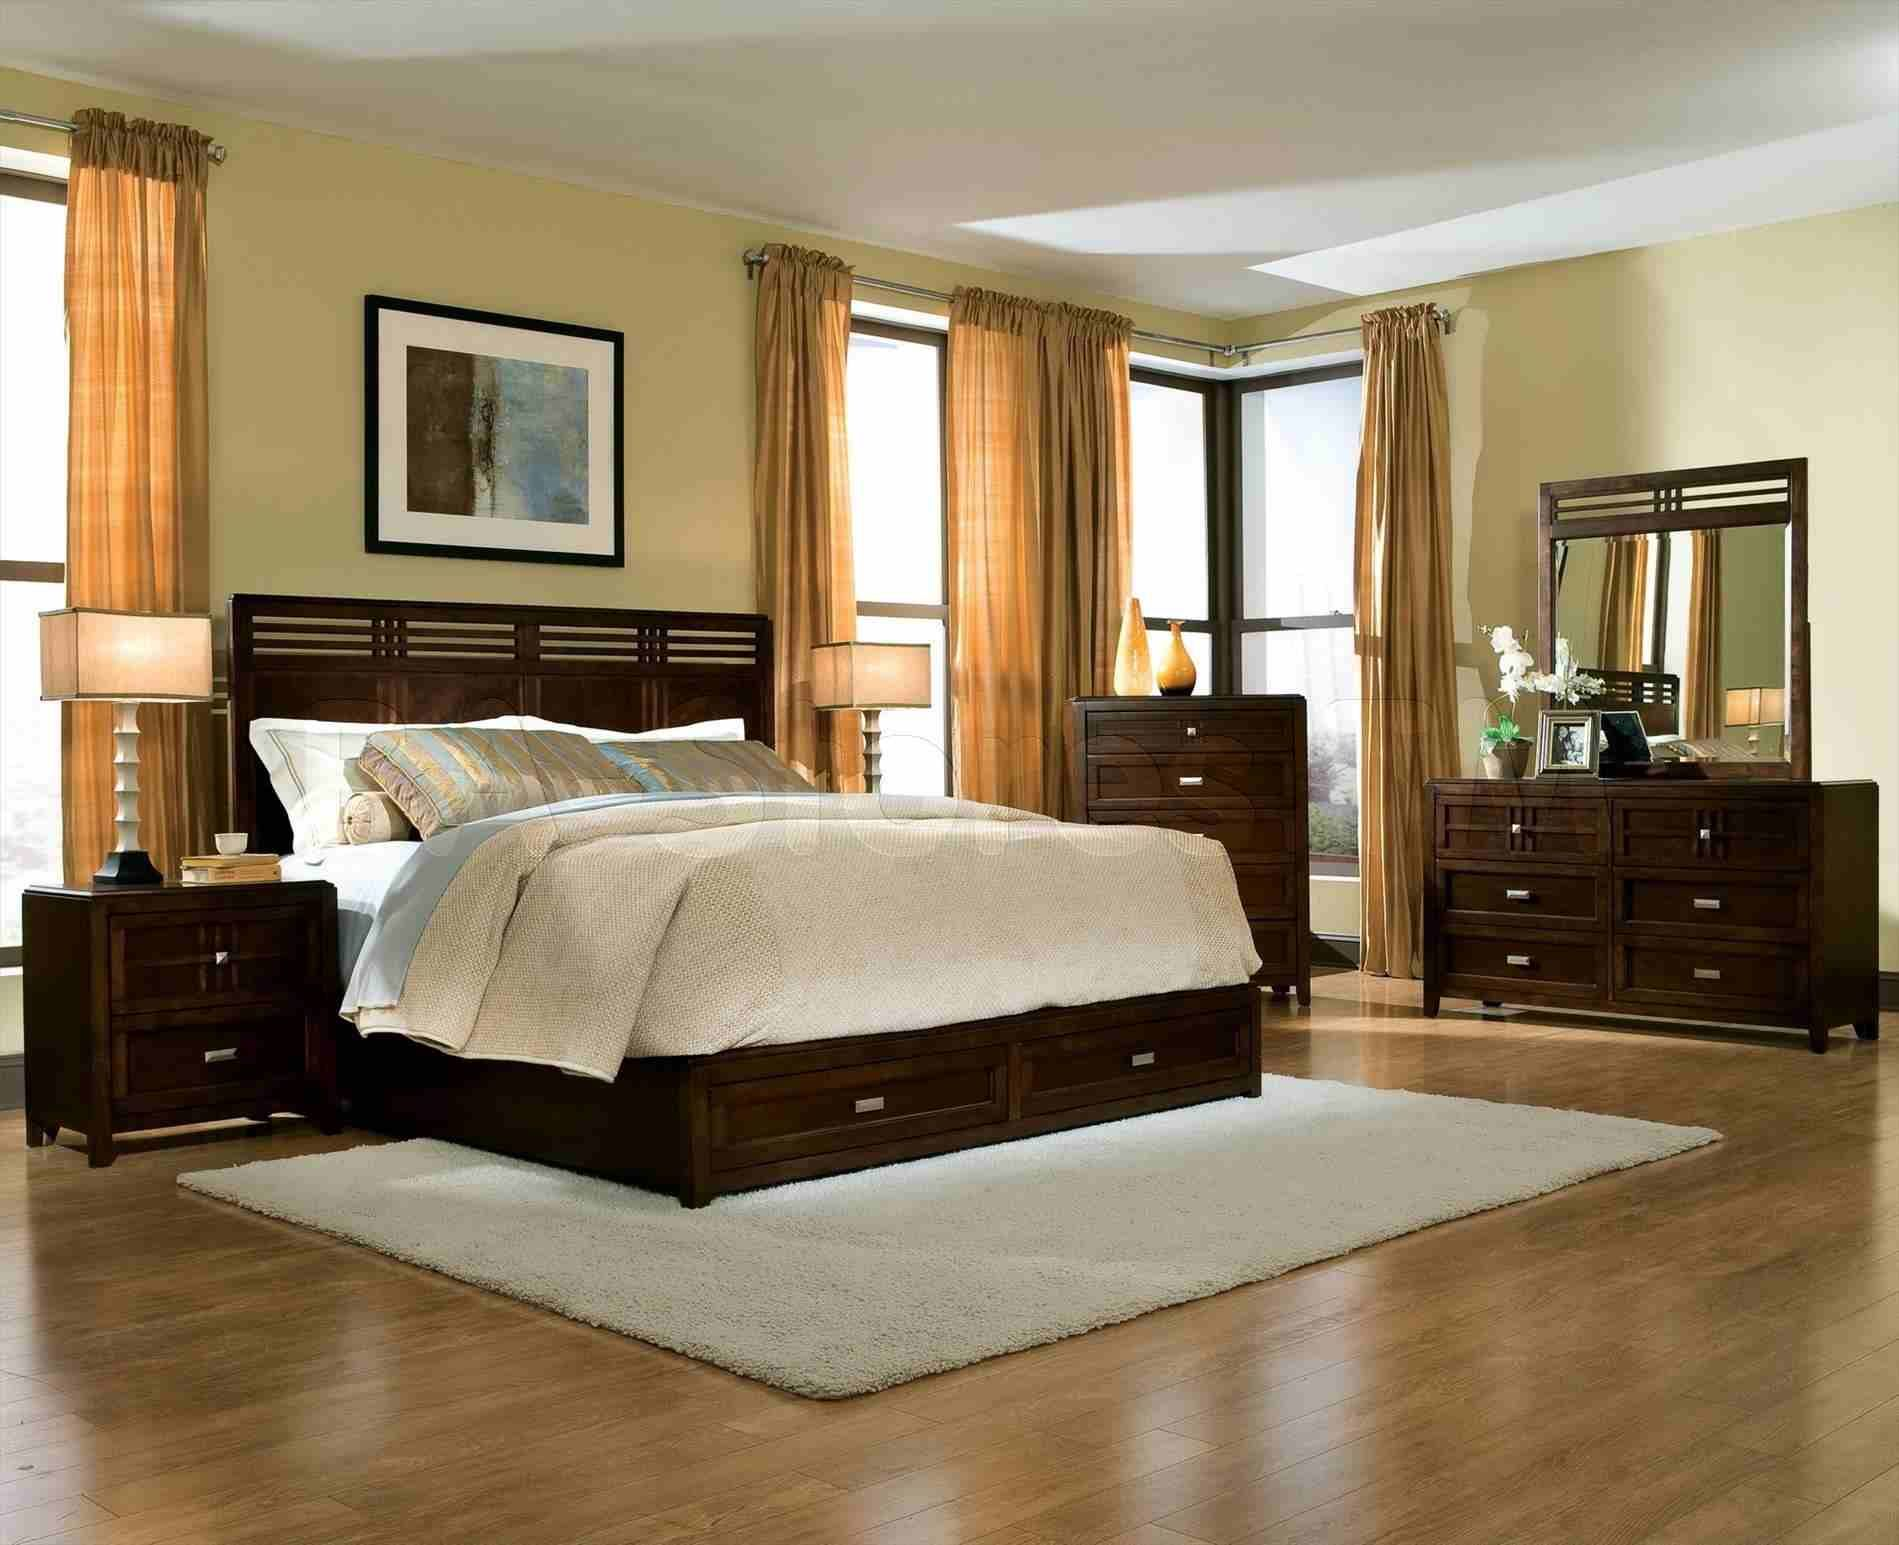 Modern Dark Wood Bedroom Furniture Master Bedroom Furniture Brown Furniture Bedroom Brown Wood Bedroom